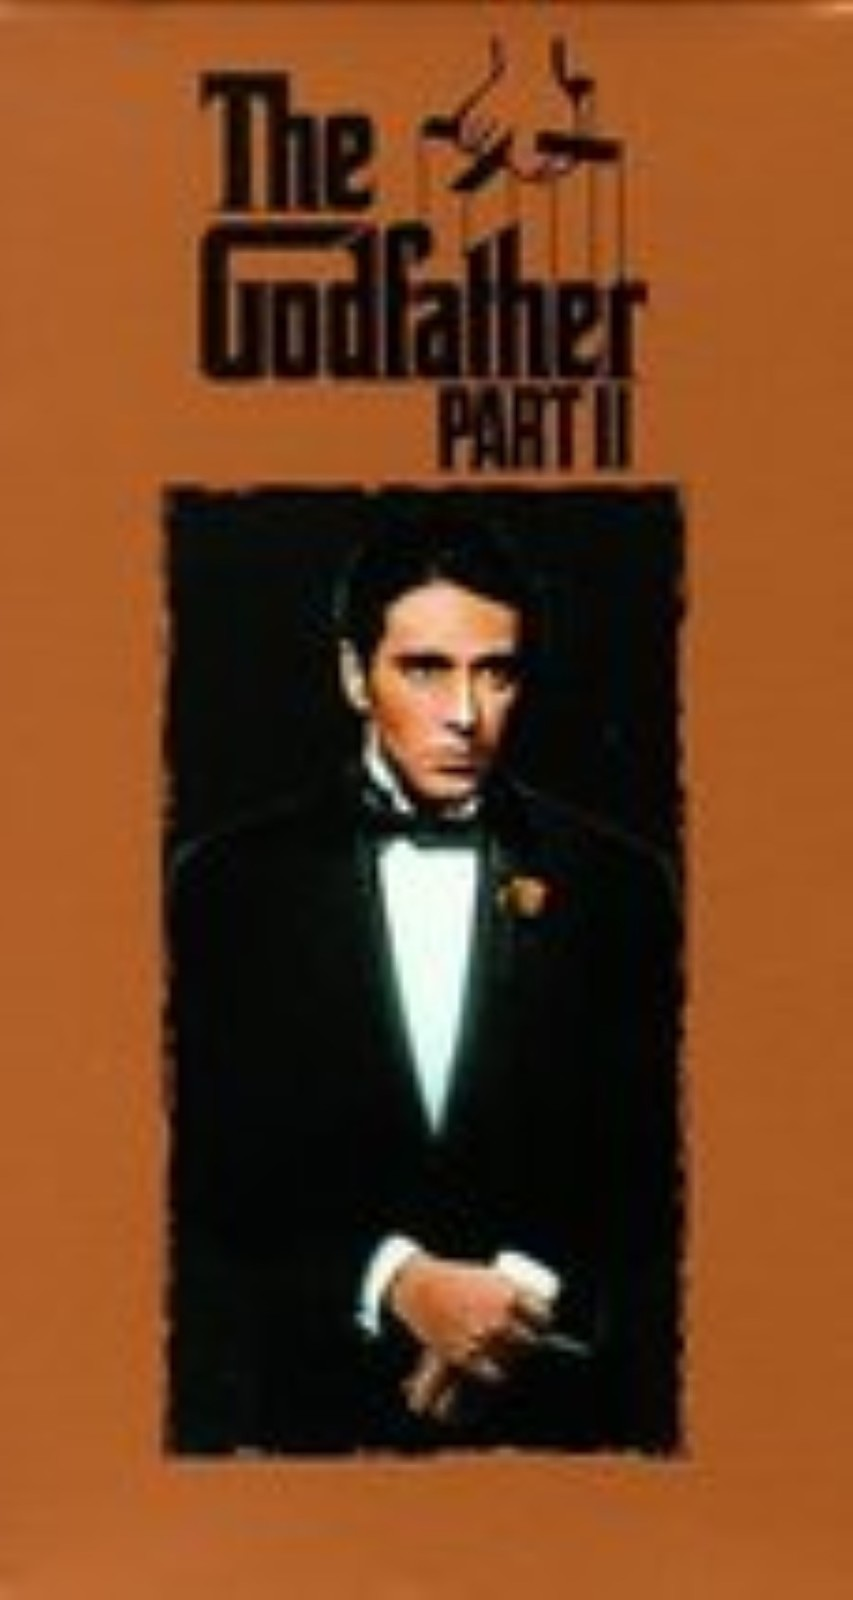 The Godfather, Part II Vhs